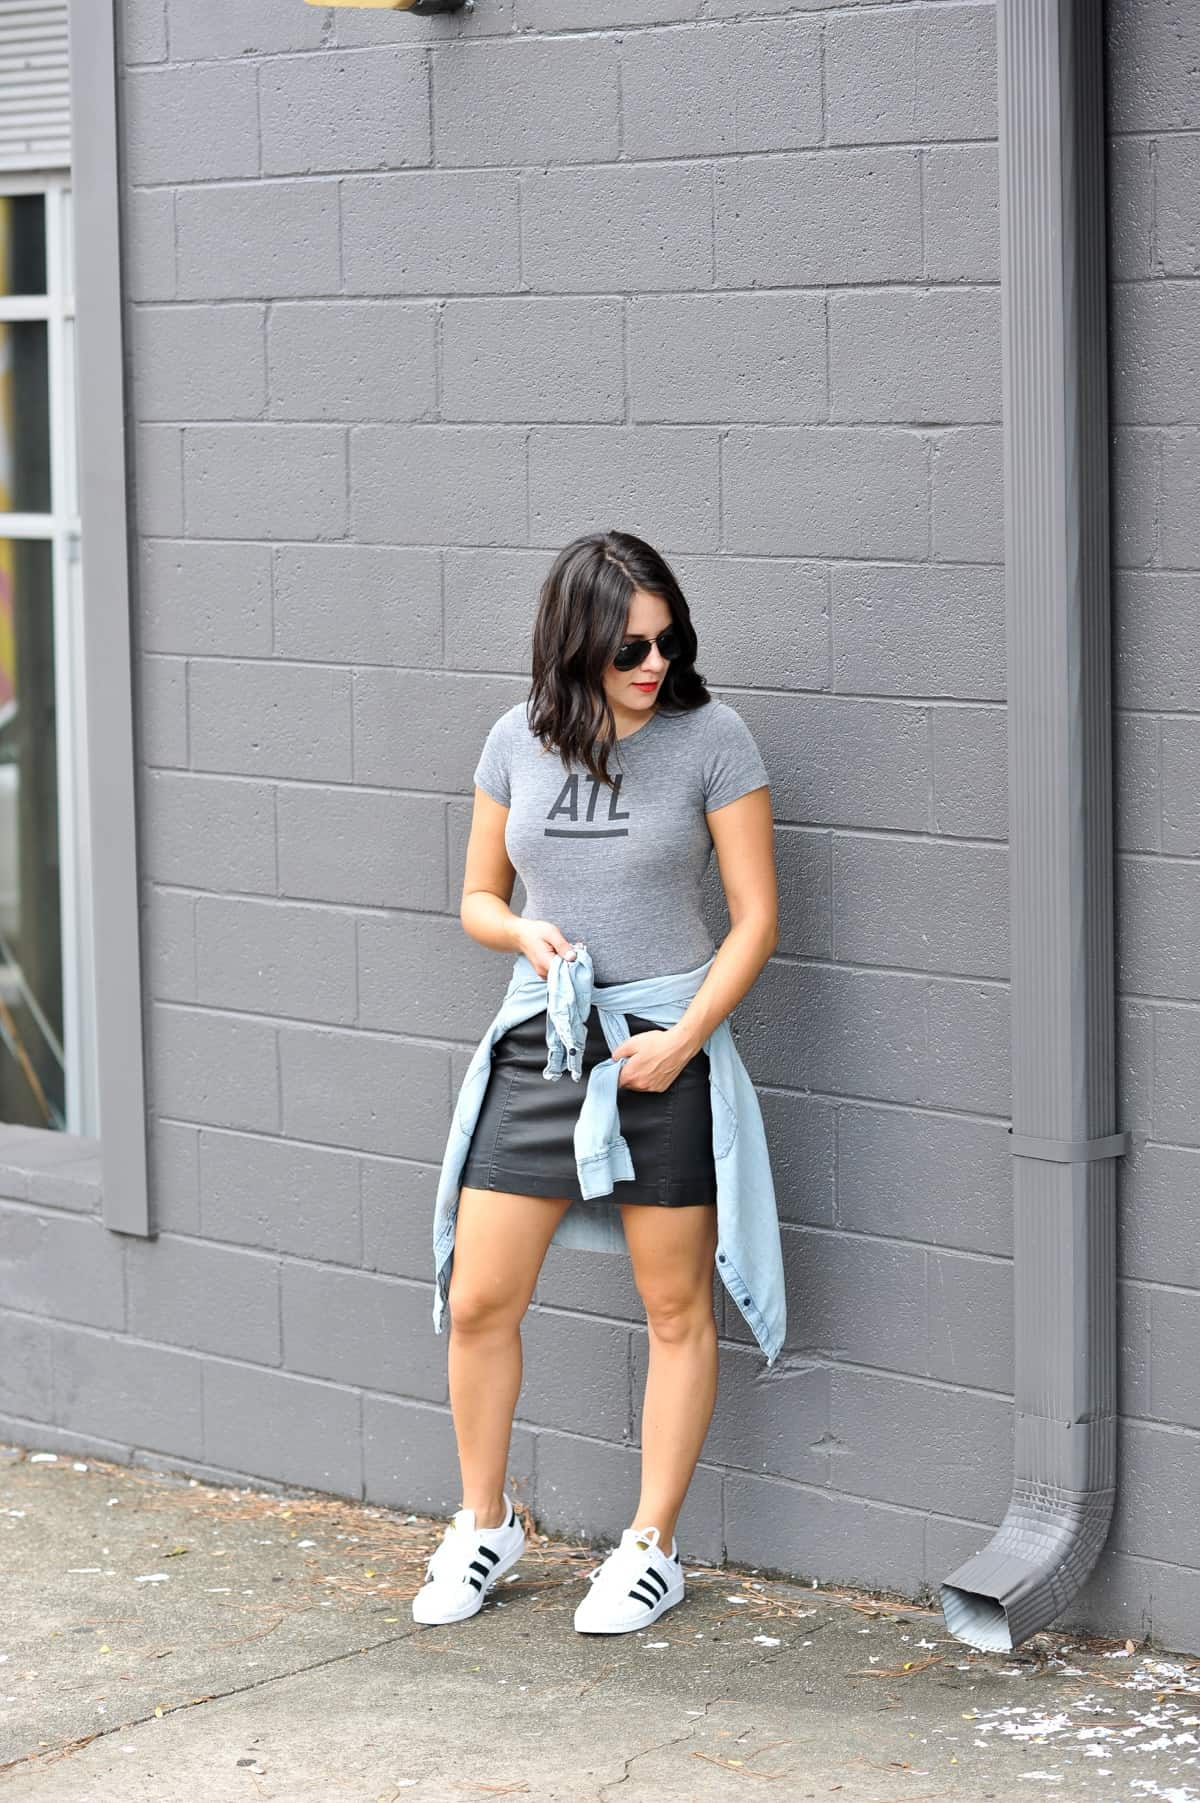 0502fb39c368 Elk Head Clothing ATL Tee (women's options instore)| Chambray Shirt | Faux Leather  Mini Skirt | Adidas Superstars | RayBan Aviators | Dolce & Gabbana Matte ...